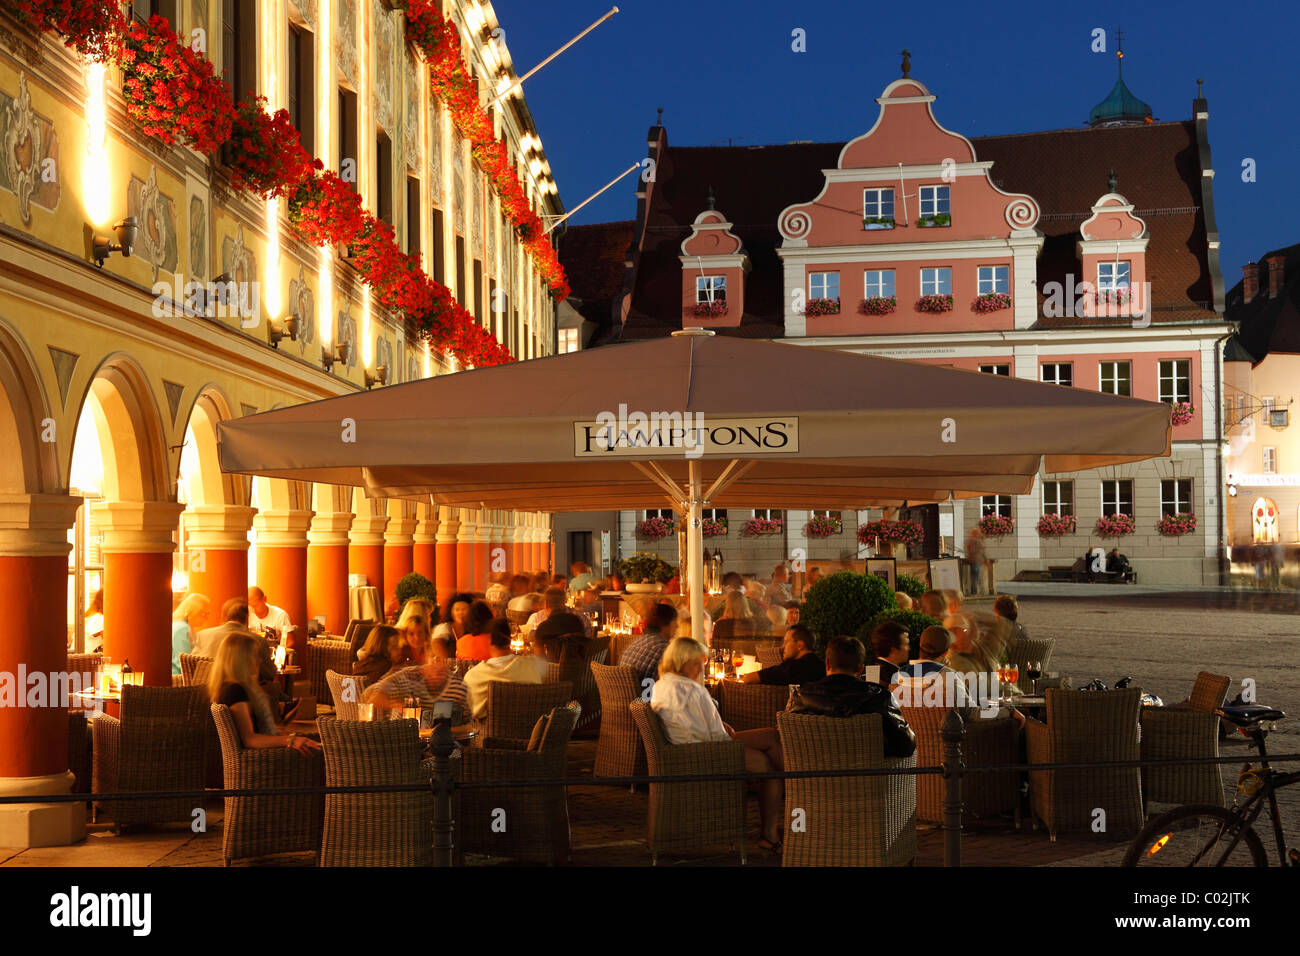 Café Hamptons in the Steuerhaus building on the market square, in the back the Grosszunft building, Memmingen - Stock Image